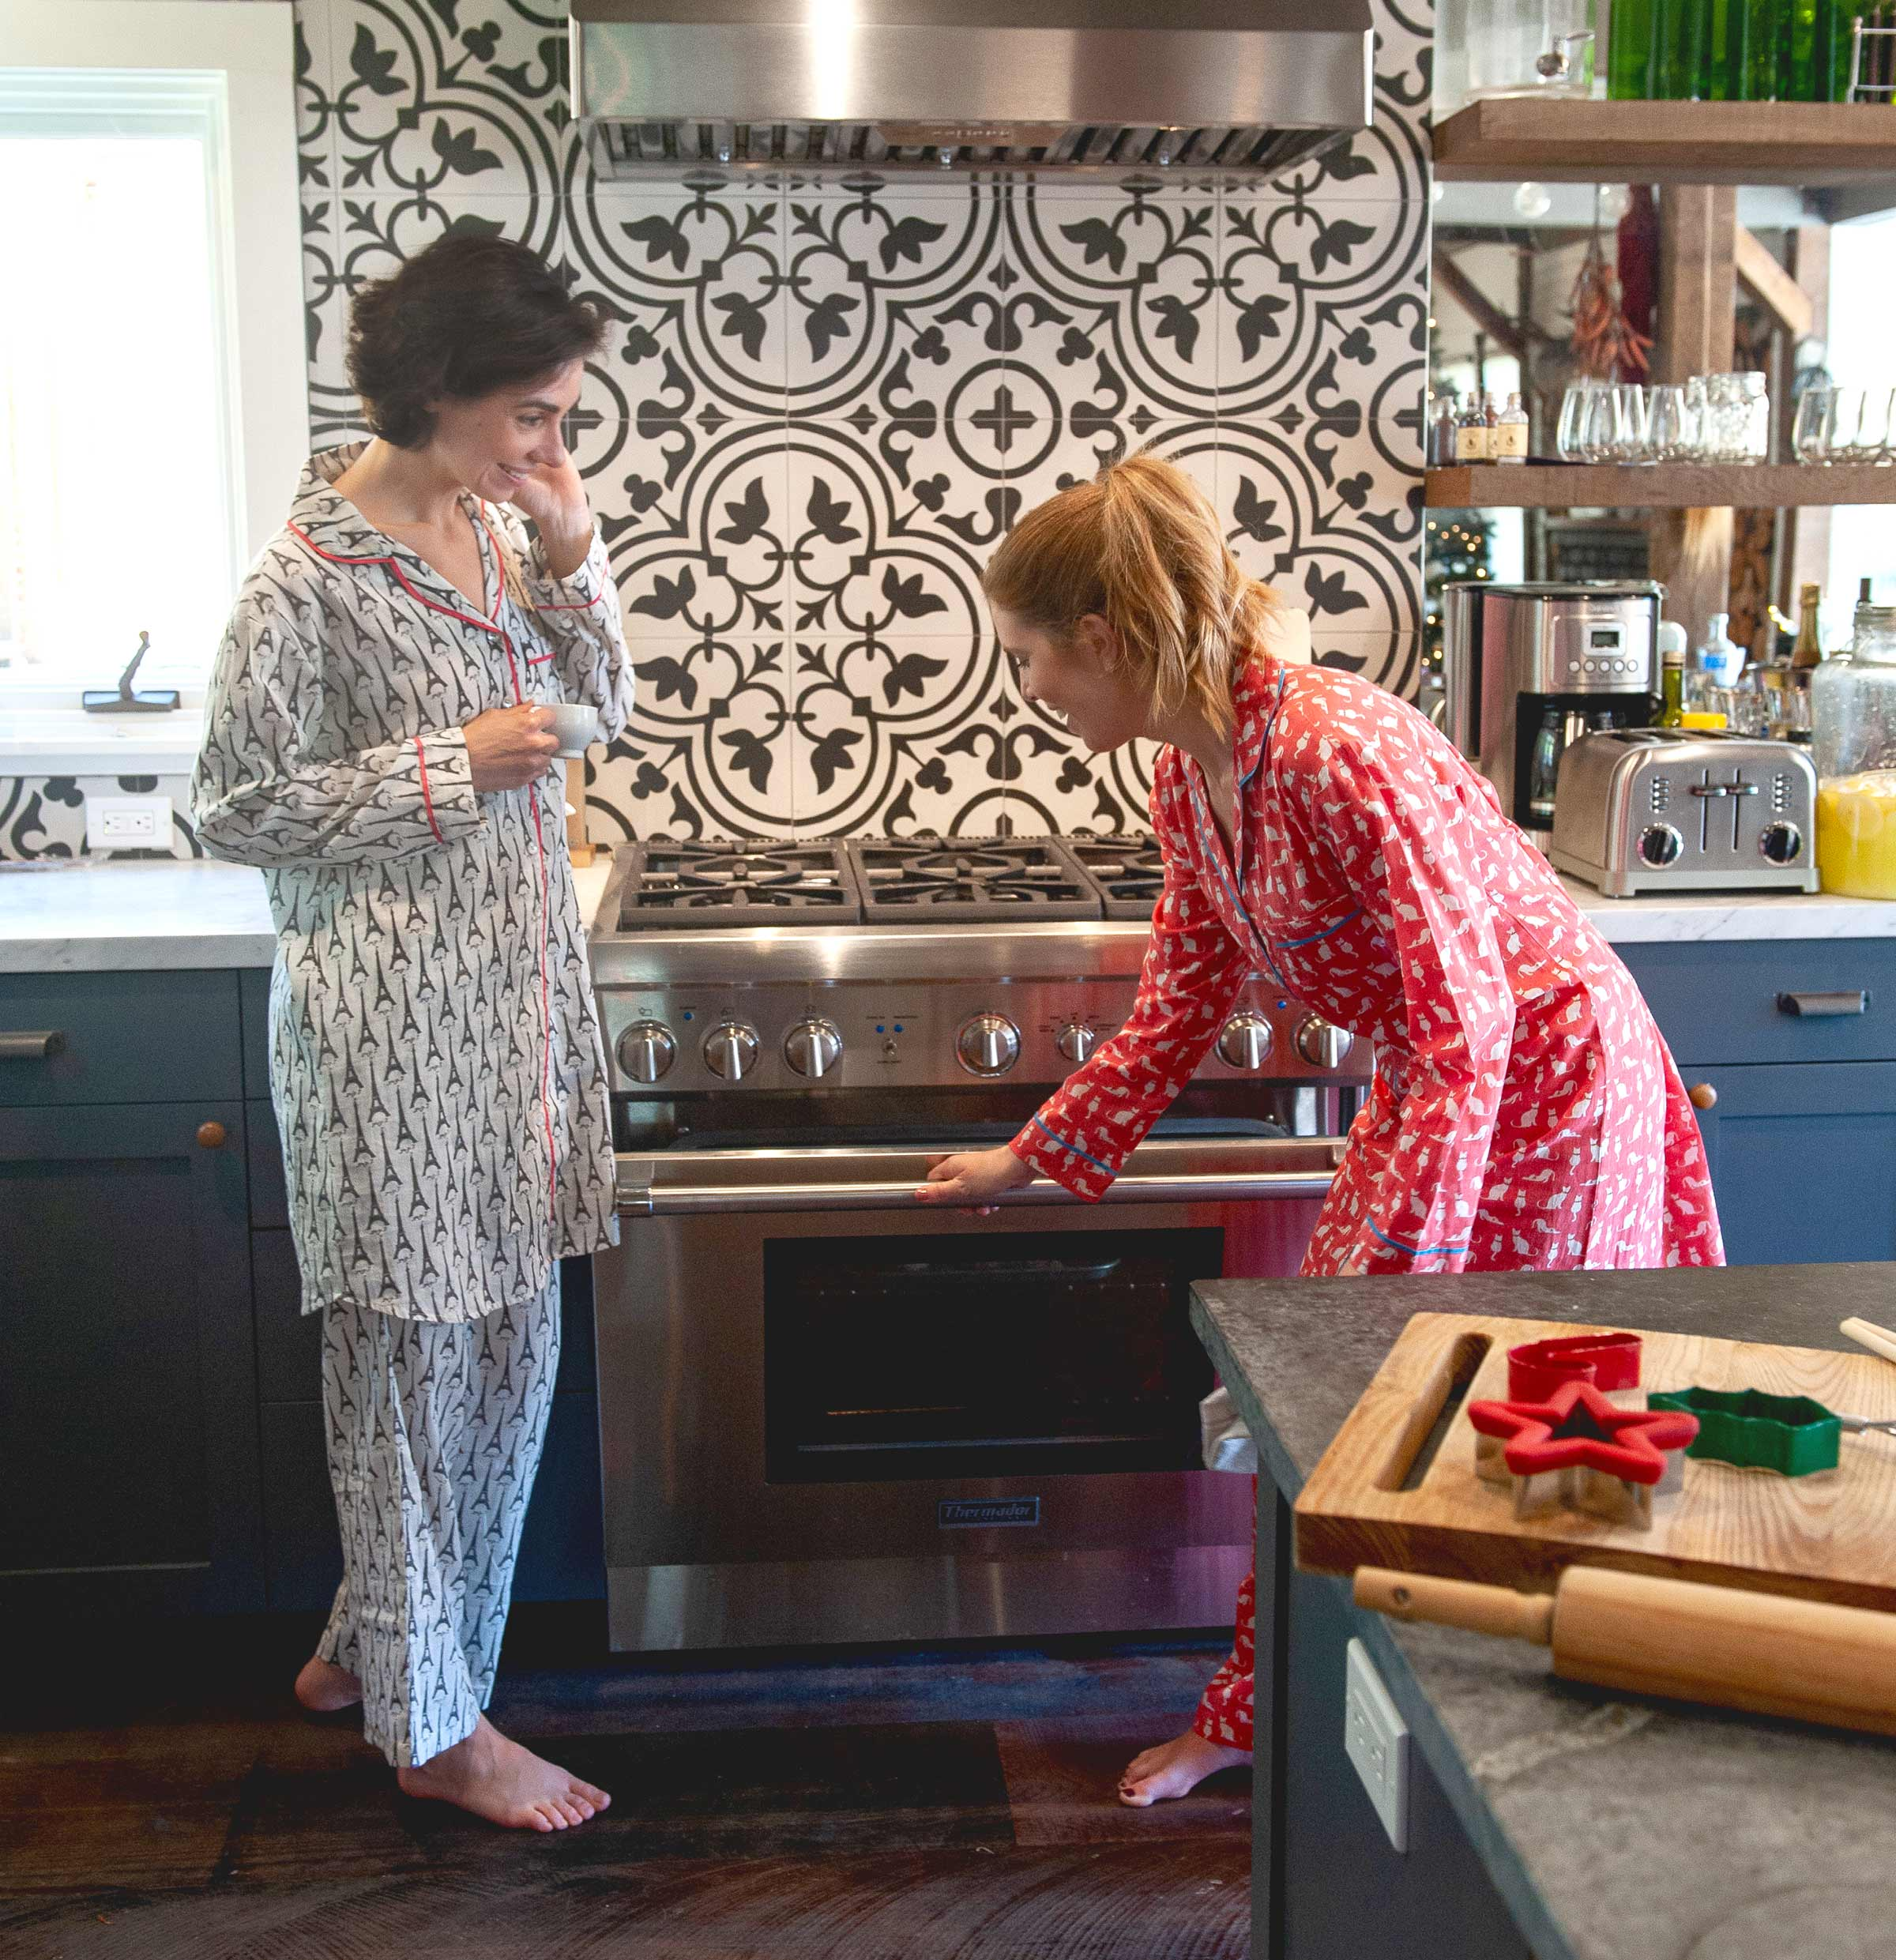 Baking cookies in comfy cotton loungewear